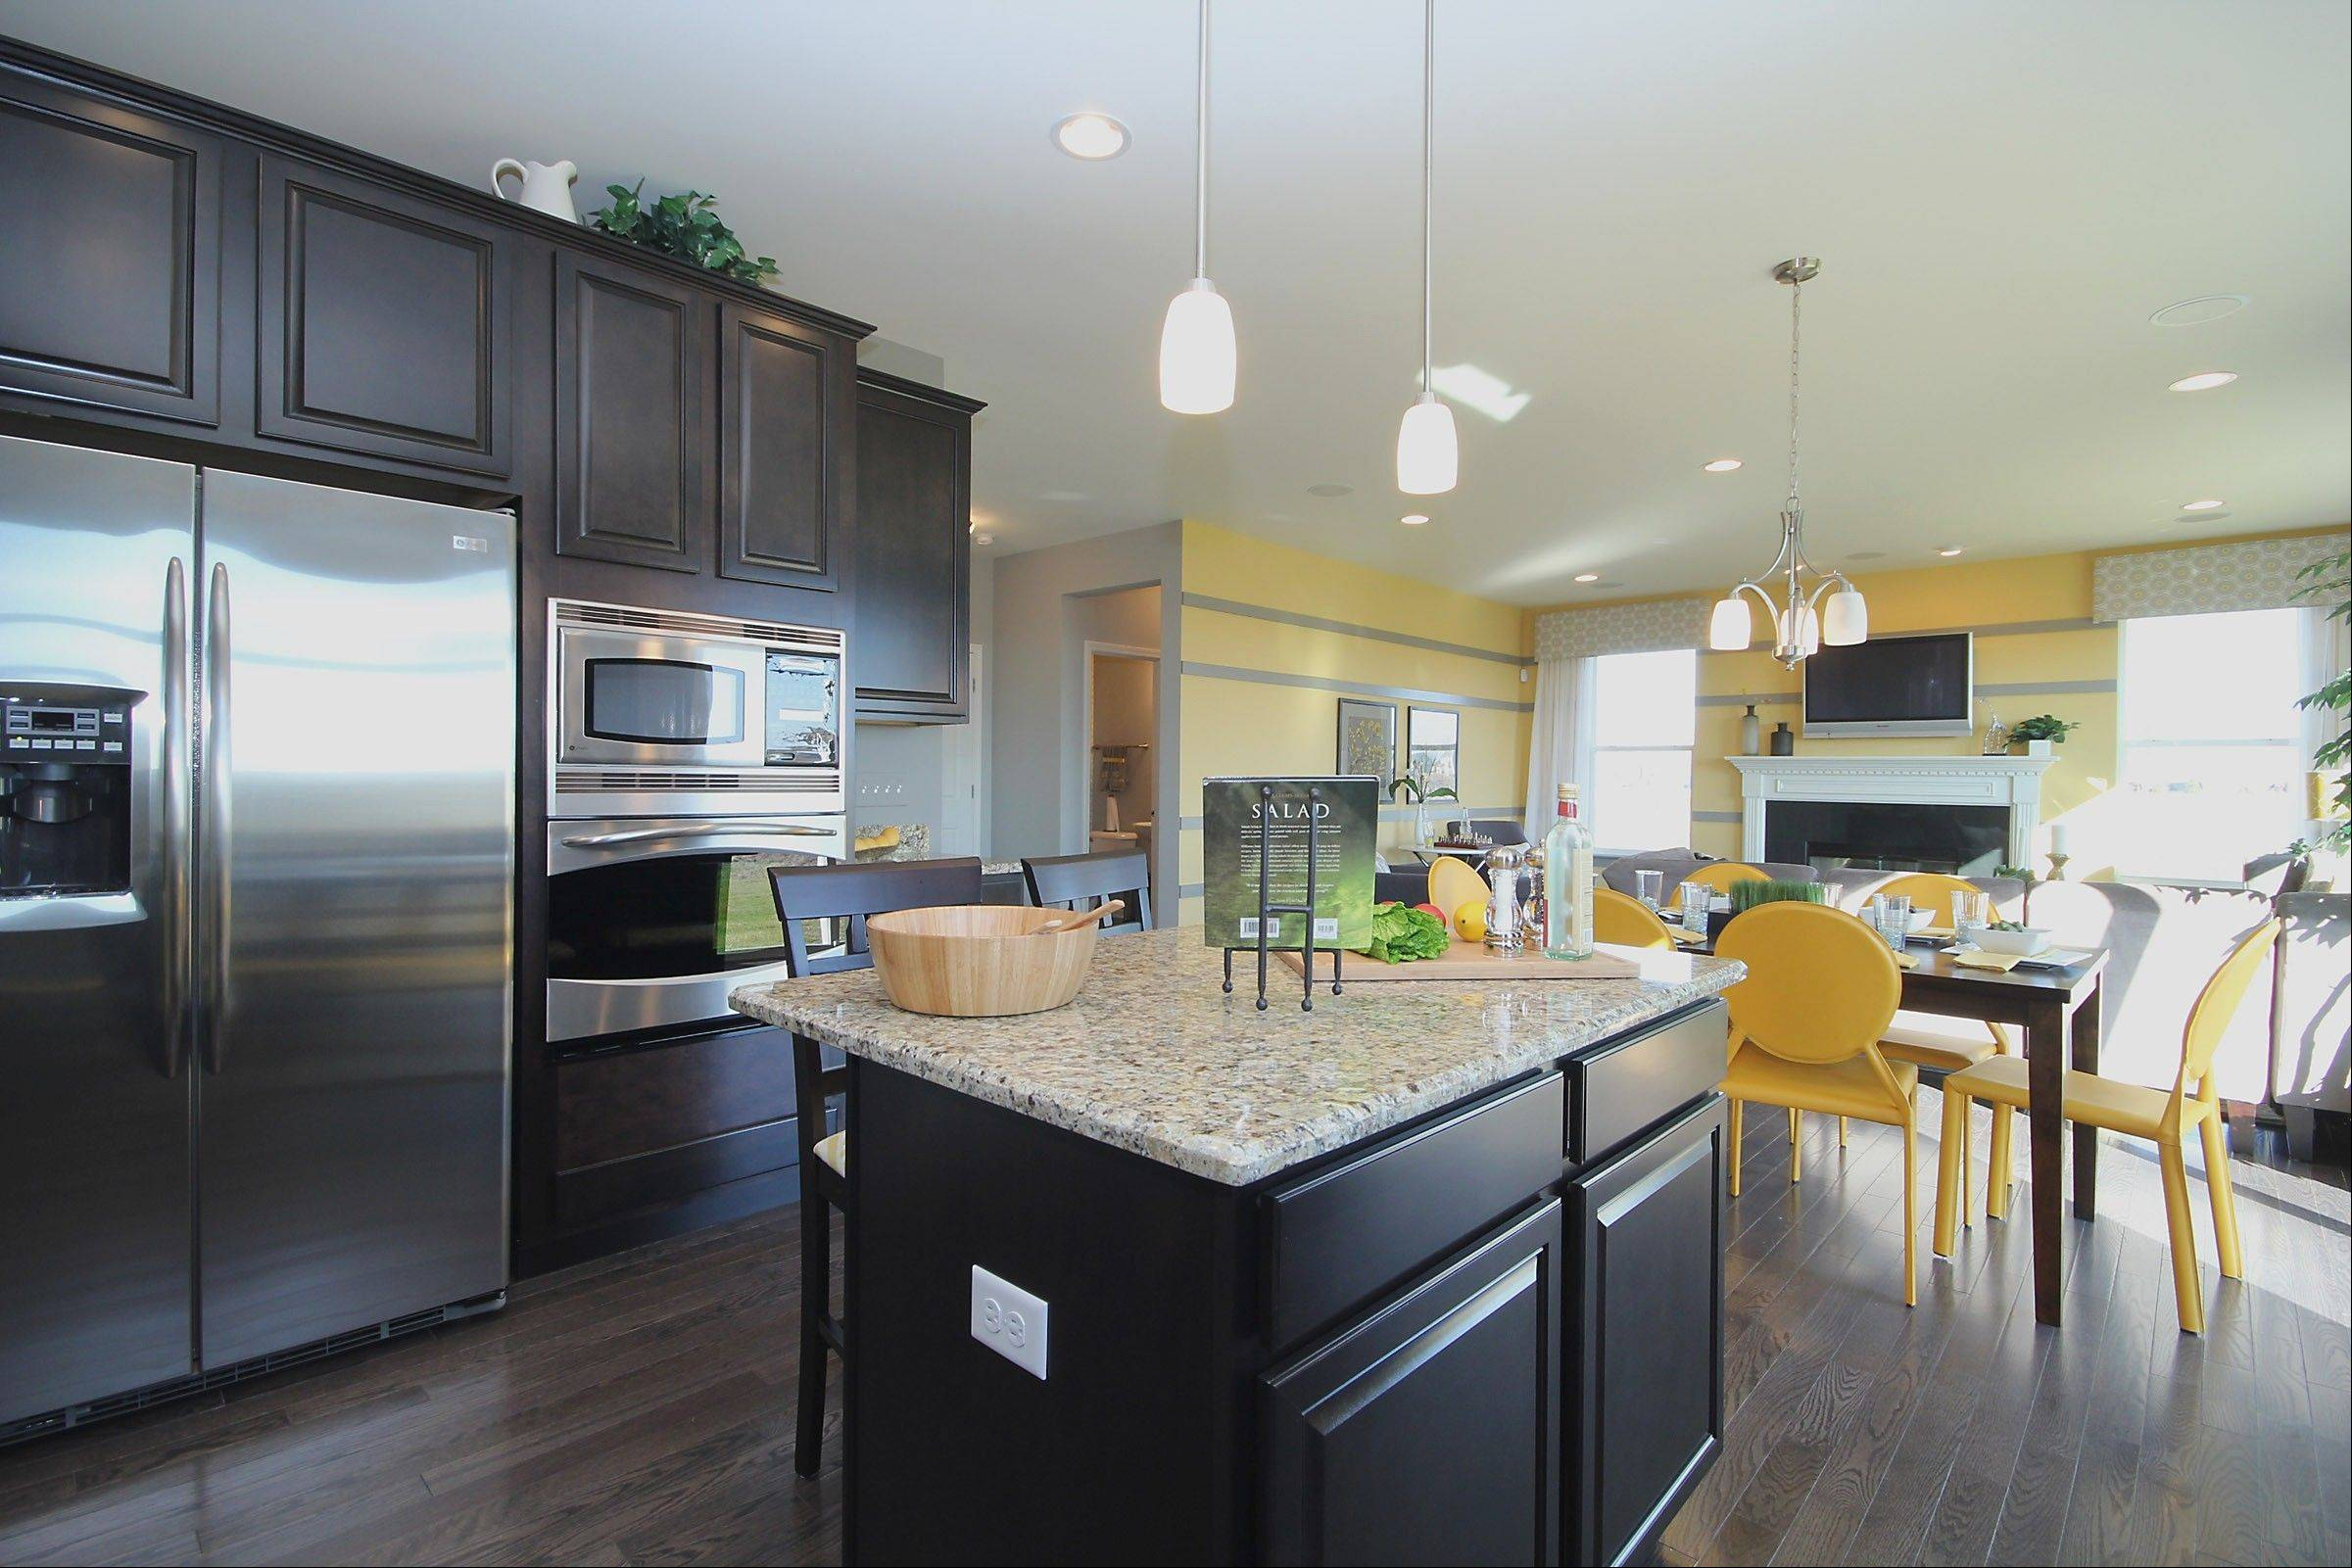 Eleni Interiors of Naperville decorated this kitchen and model for Ryland Homes� Ingham Park community in Aurora.